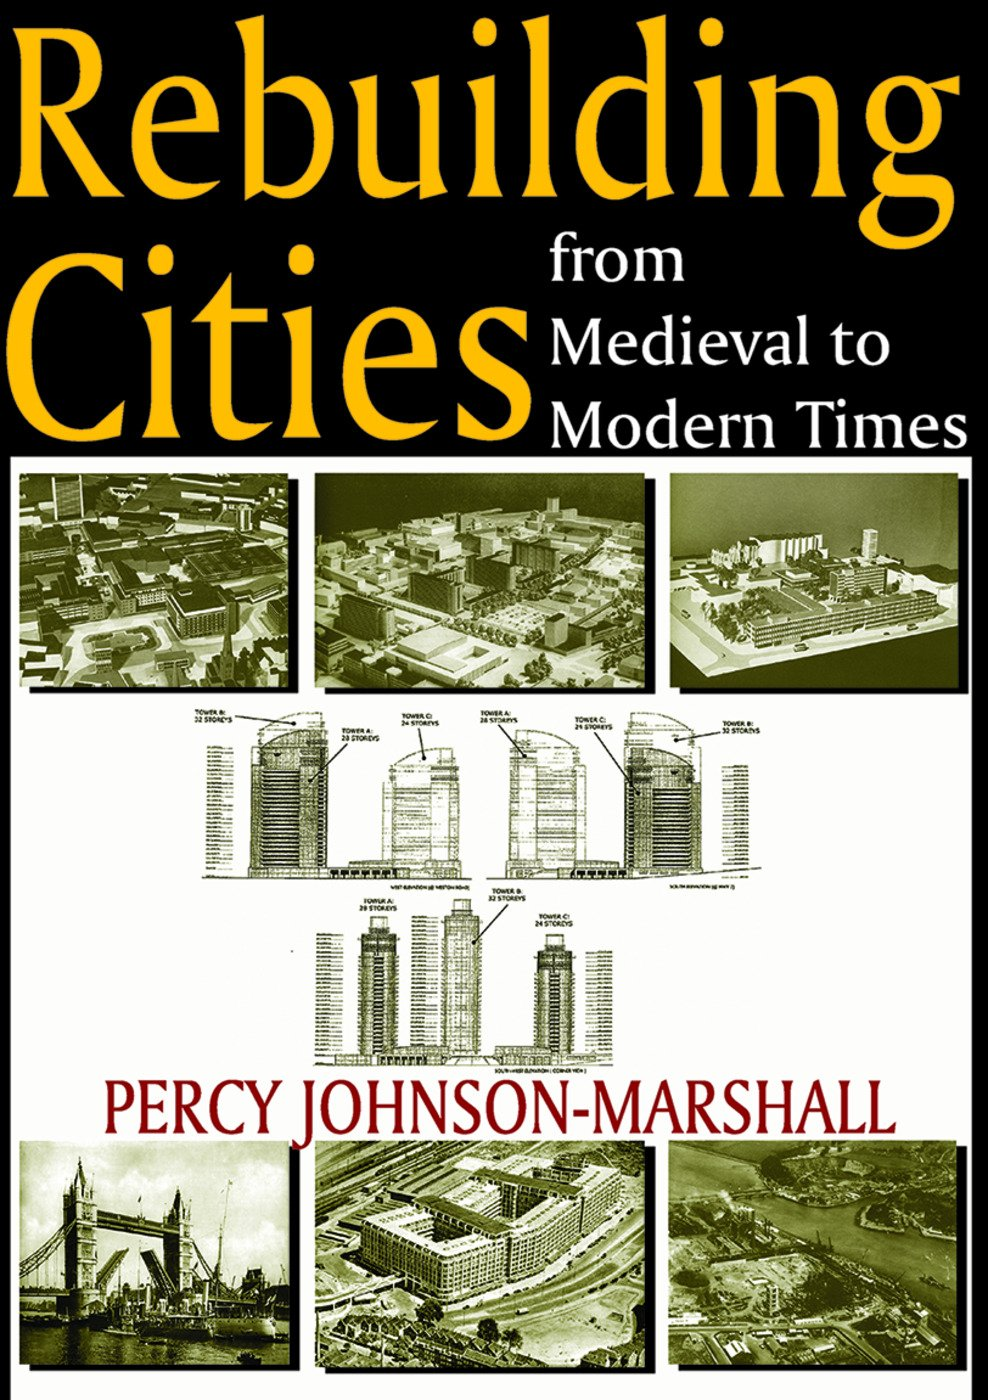 Rebuilding Cities from Medieval to Modern Times: 1st Edition (Paperback) book cover